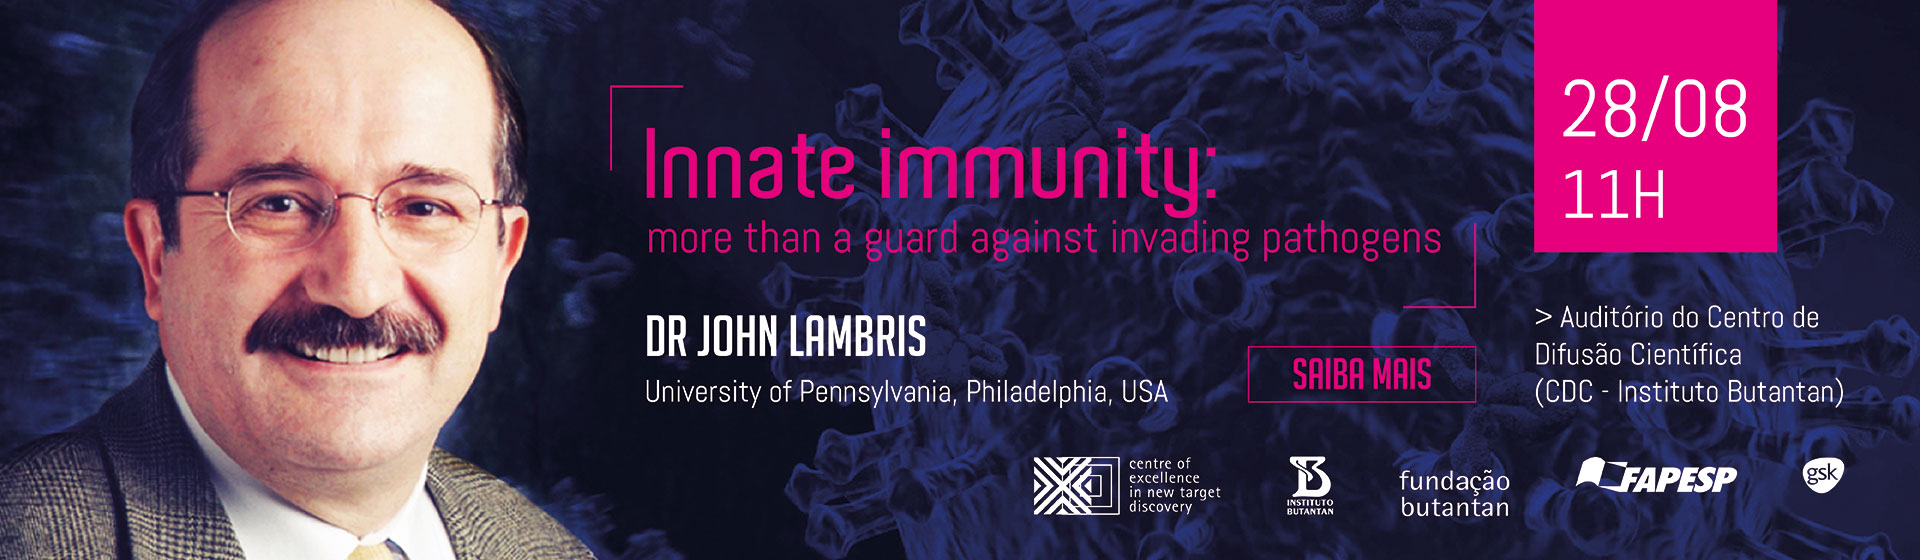 Innate immunity: more than a guard against invading pathogens